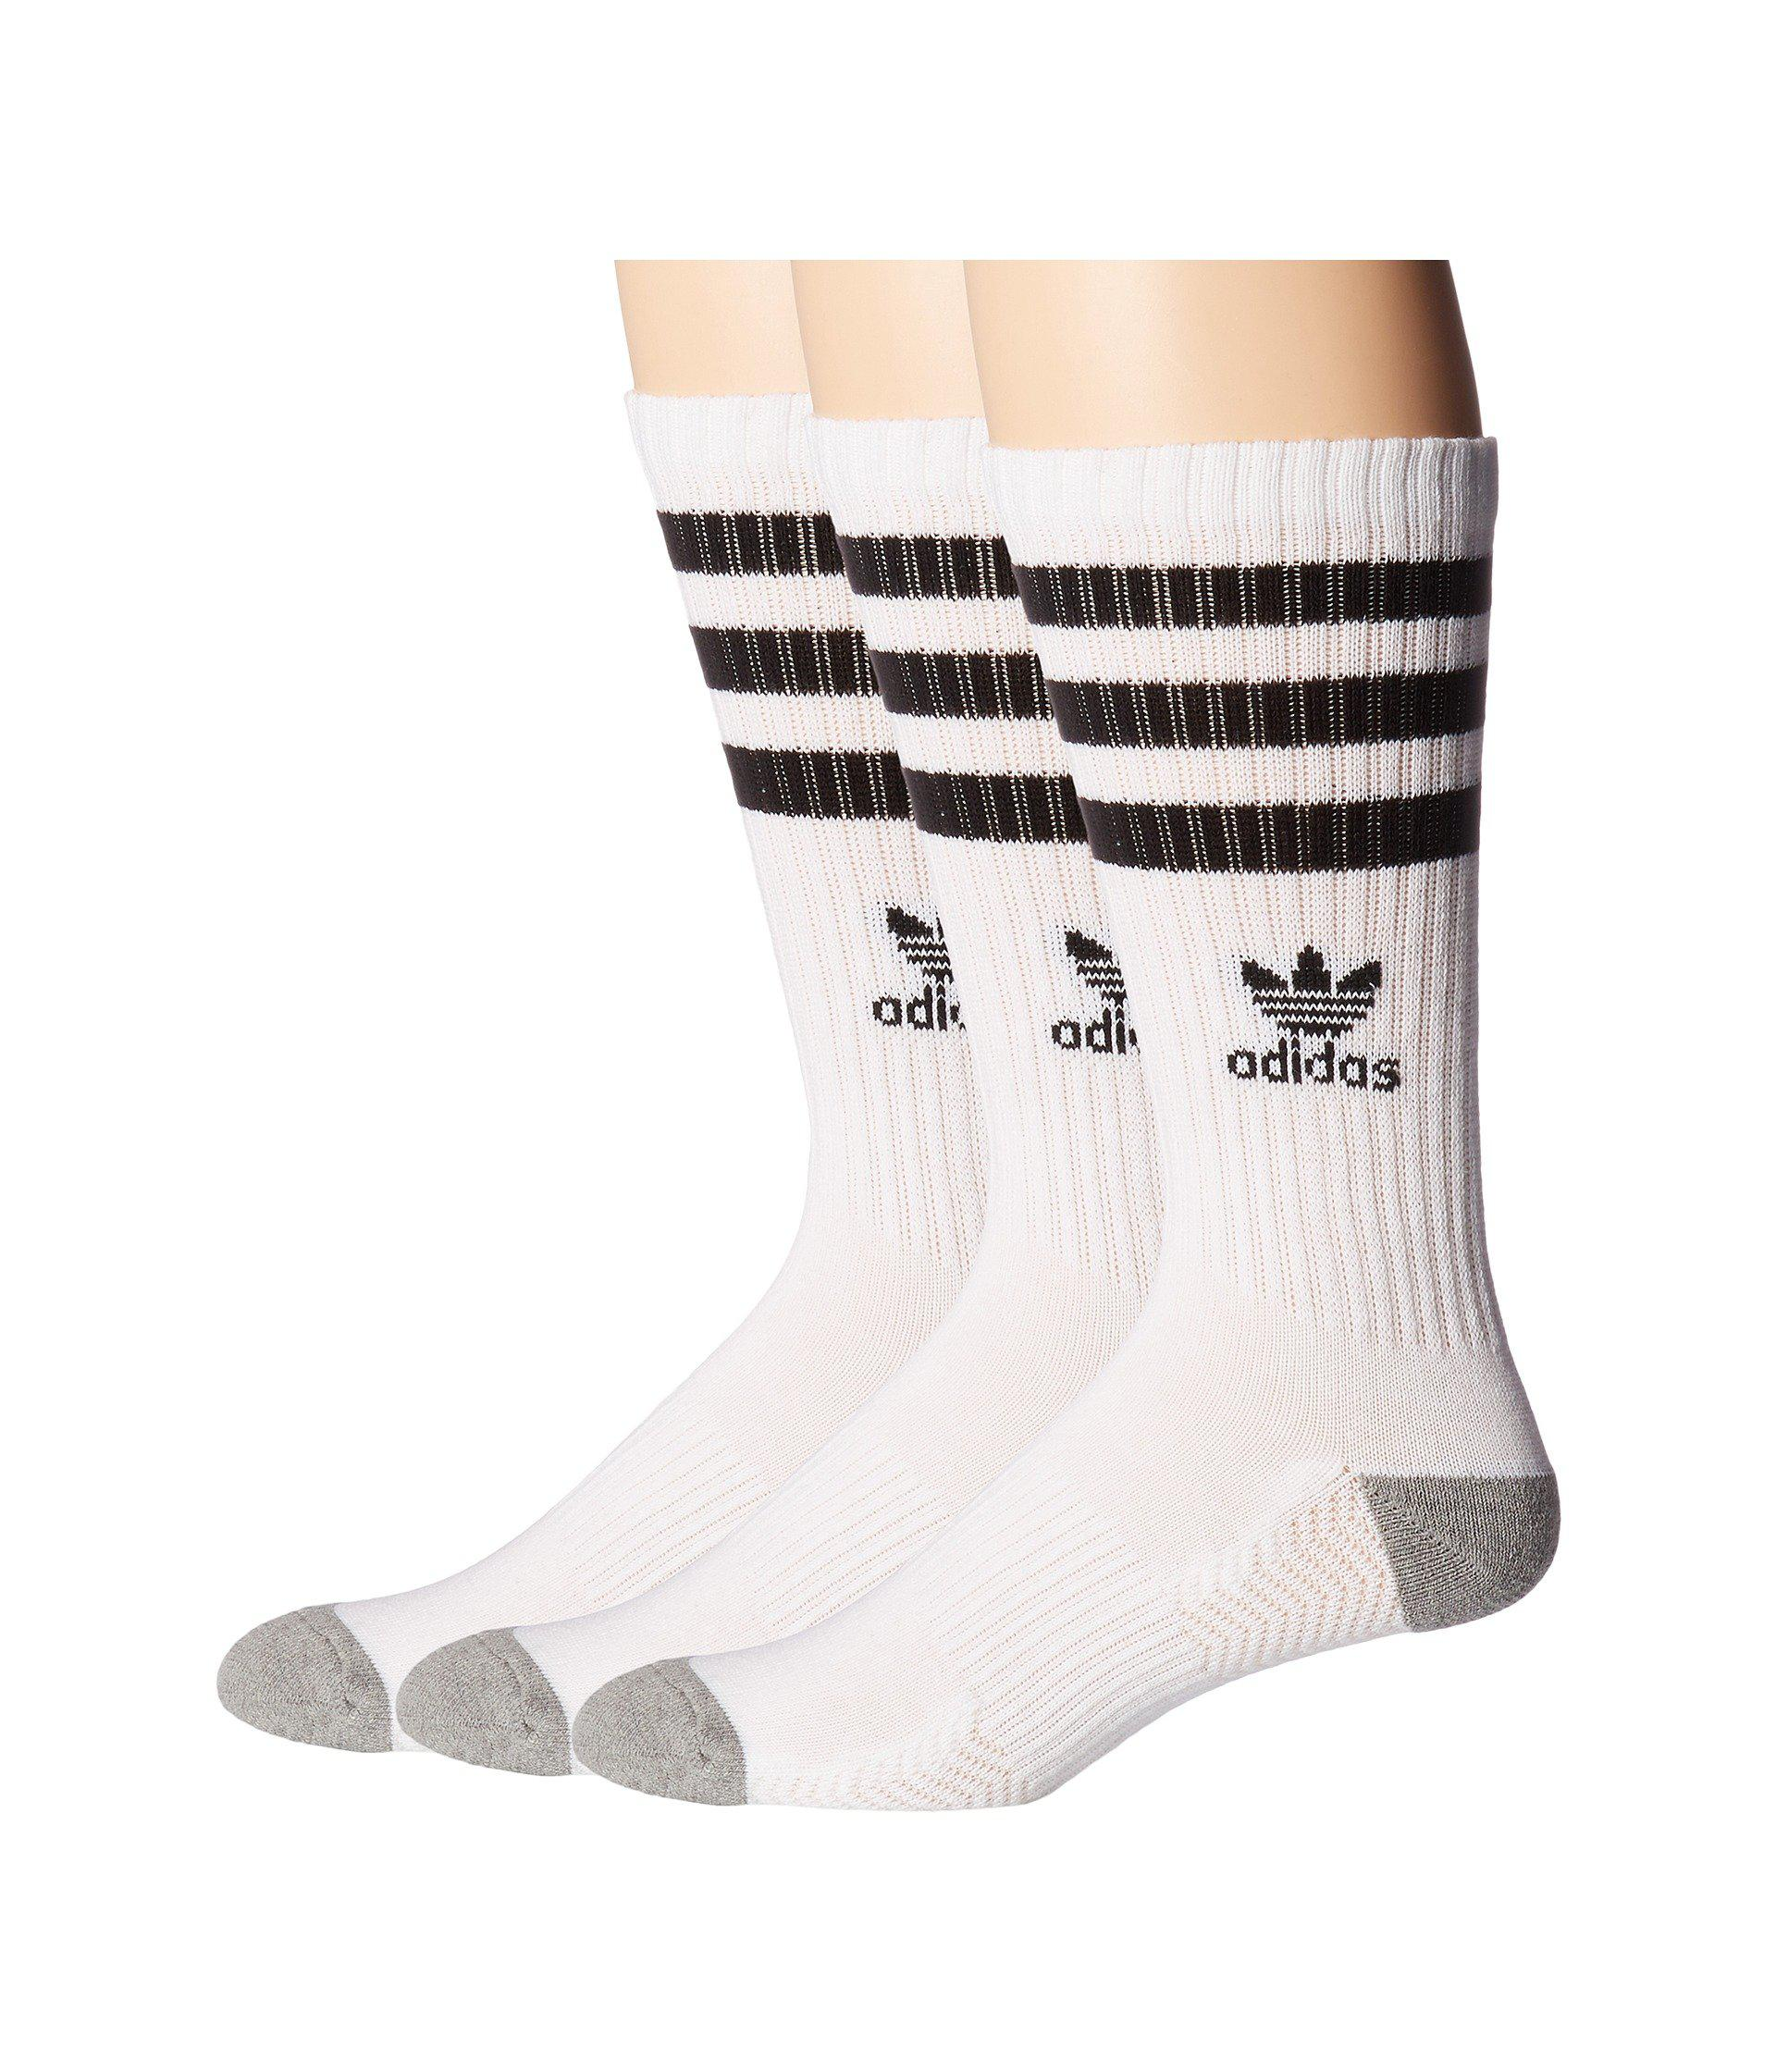 Lyst - adidas Originals Originals Roller Crew Sock 3-pack (light ... 20d8ff697